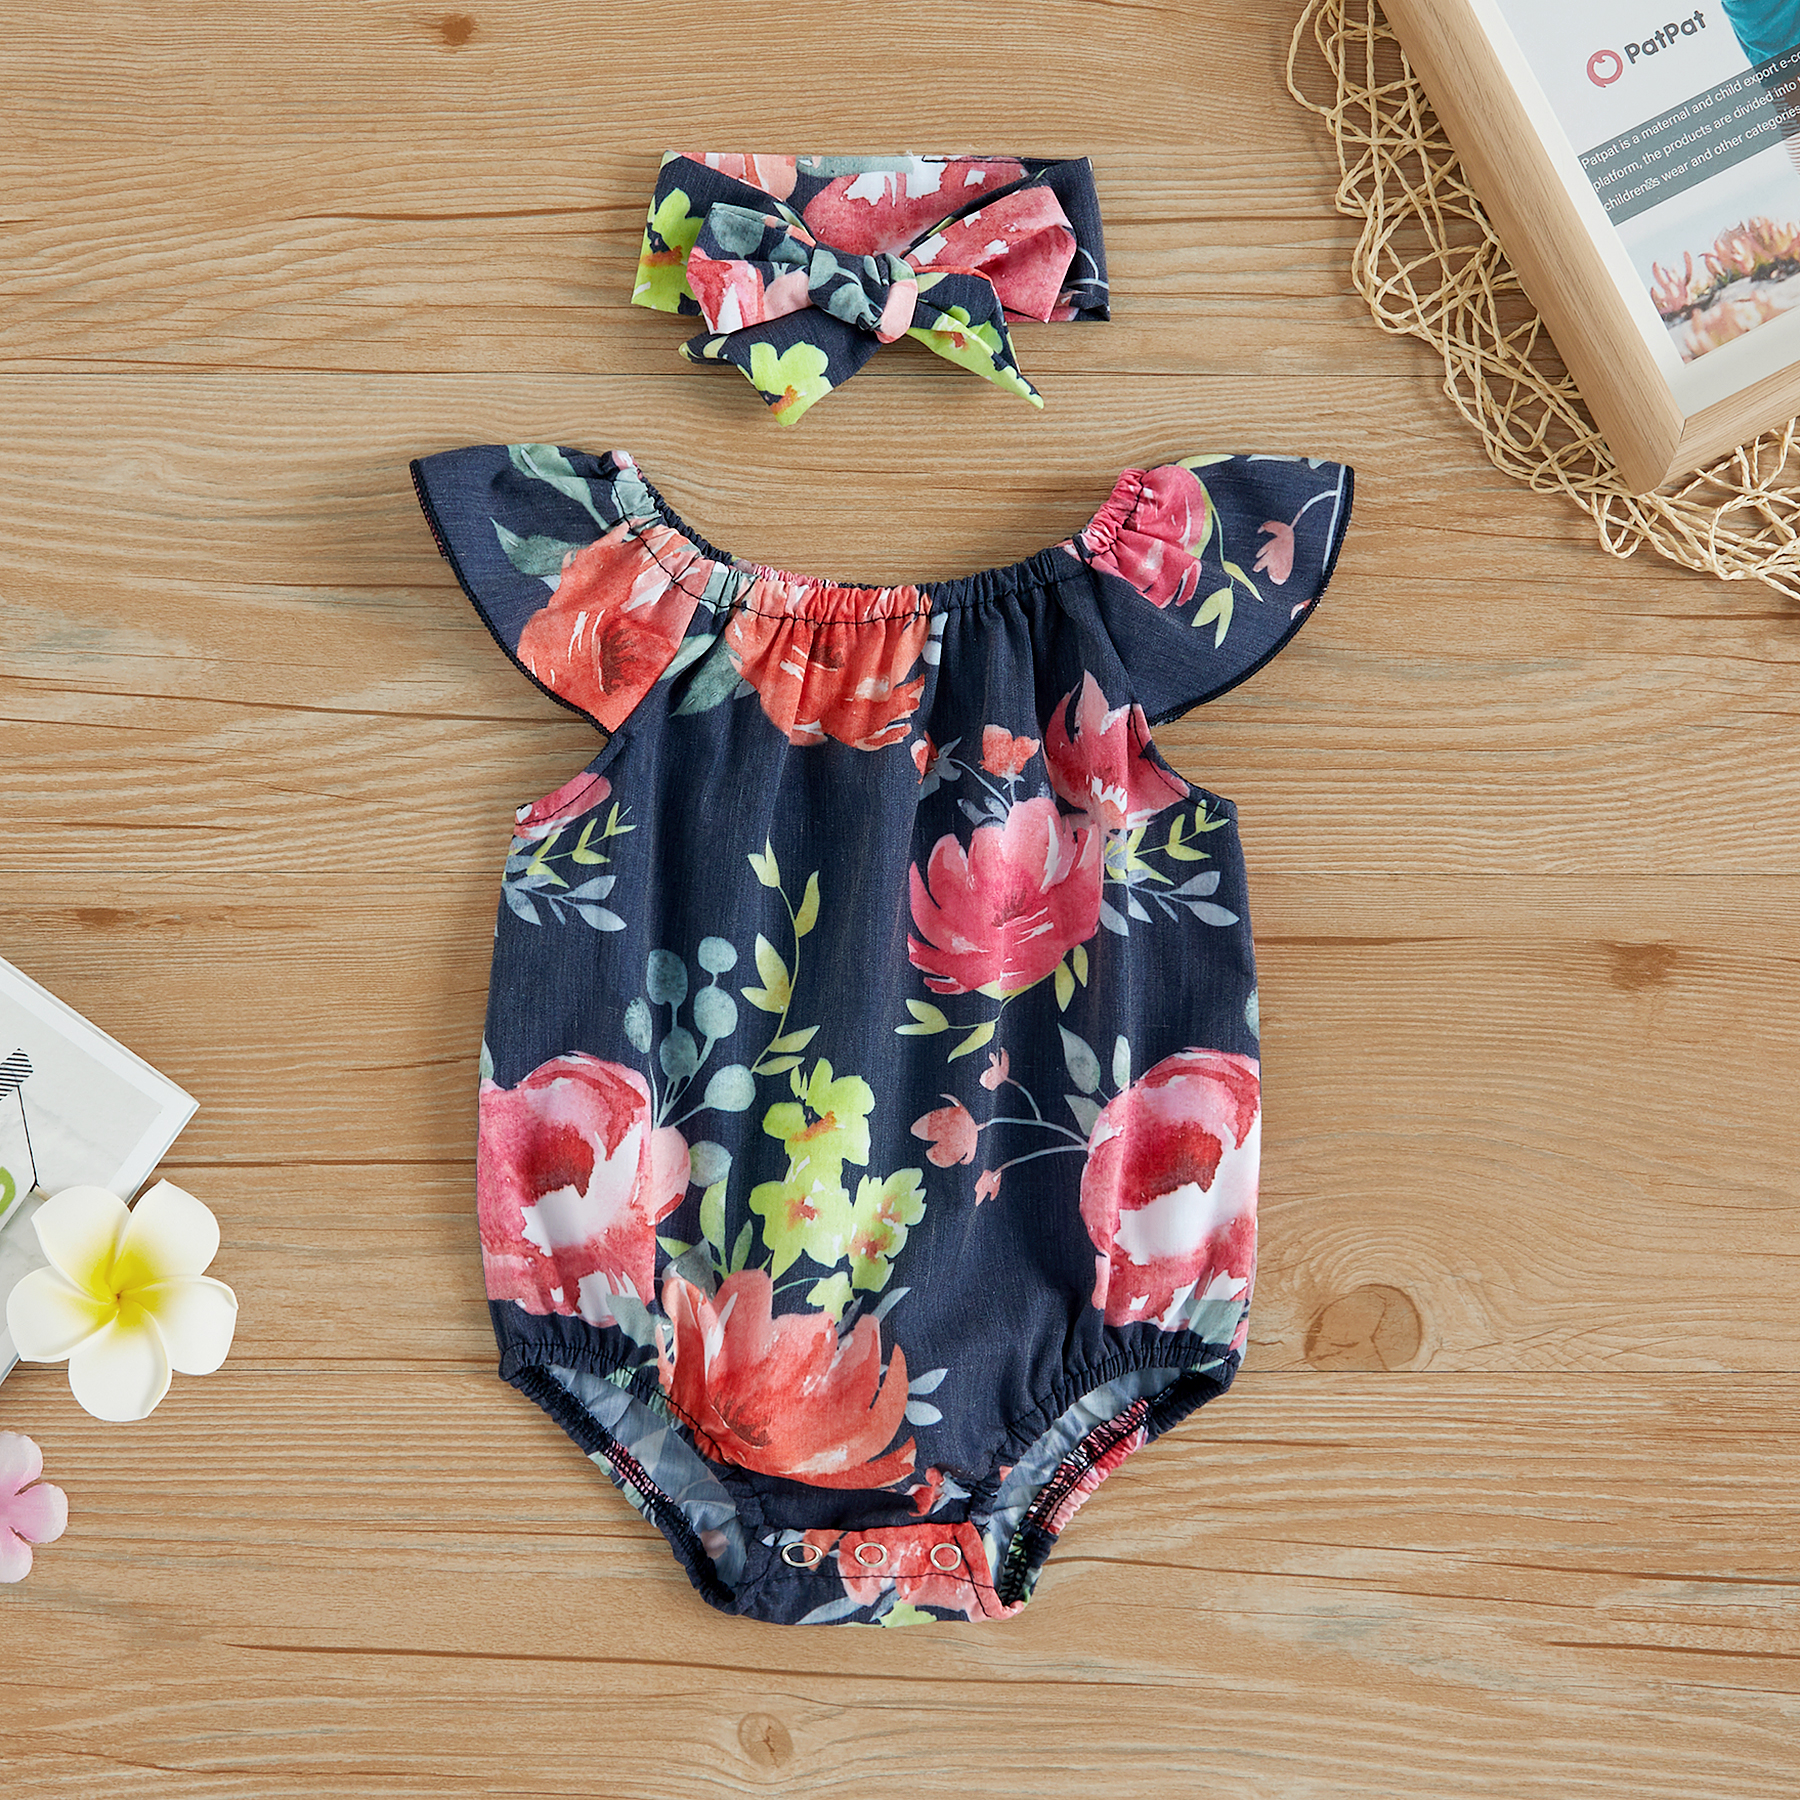 12-18M, Pink MIOIM Lovely Baby Girls Floral Crawl Romper Headband Onesie Sunsuit Outfits